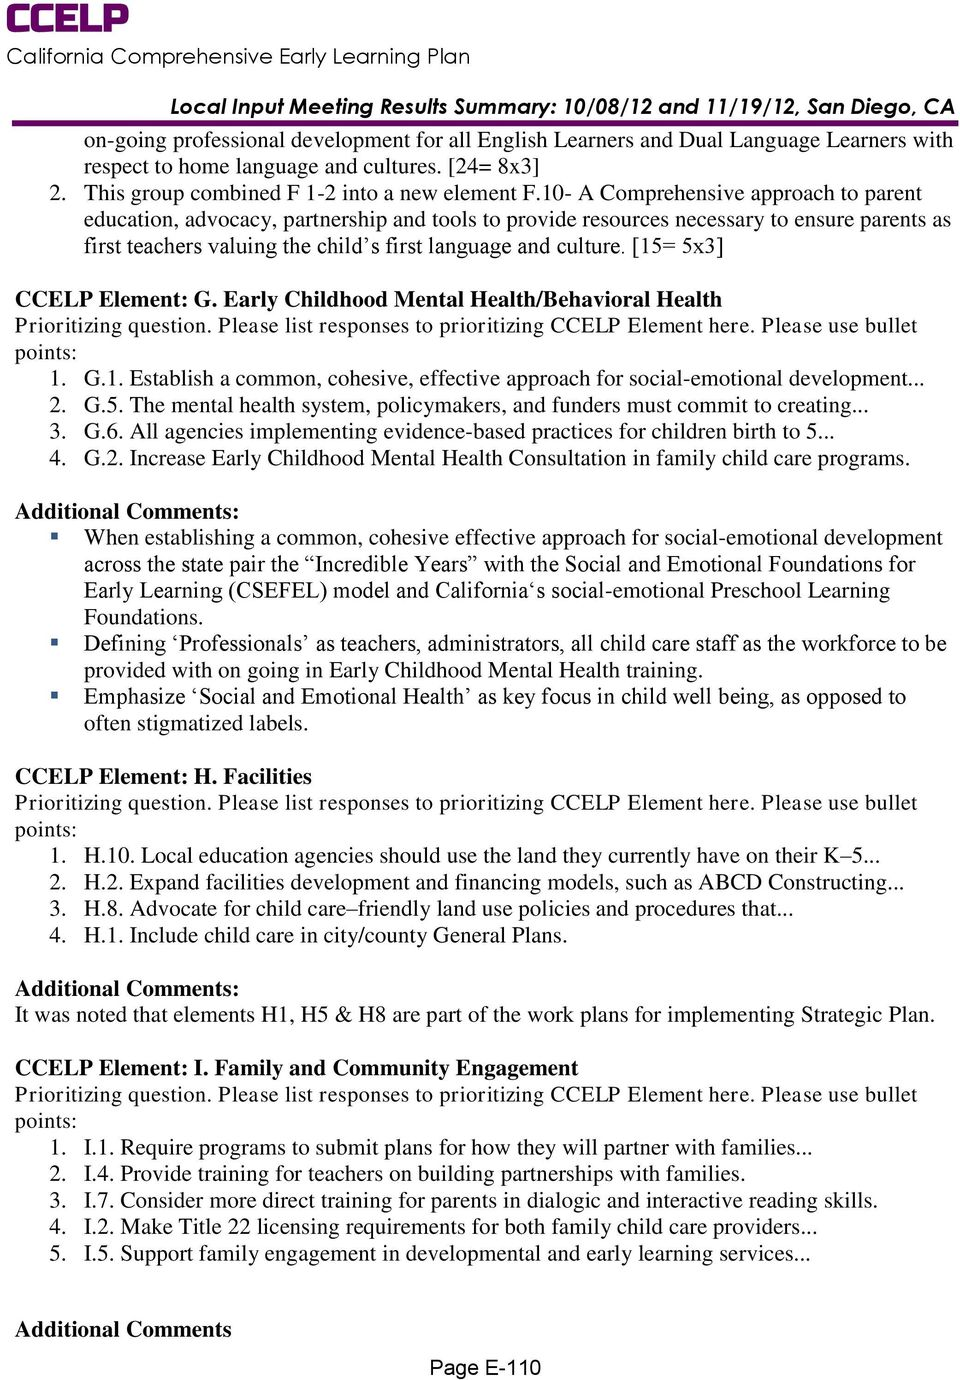 [15= 5x3] CCELP Element: G. Early Childhood Mental Health/Behavioral Health 1. G.1. Establish a common, cohesive, effective approach for social-emotional development... 2. G.5. The mental health system, policymakers, and funders must commit to creating.